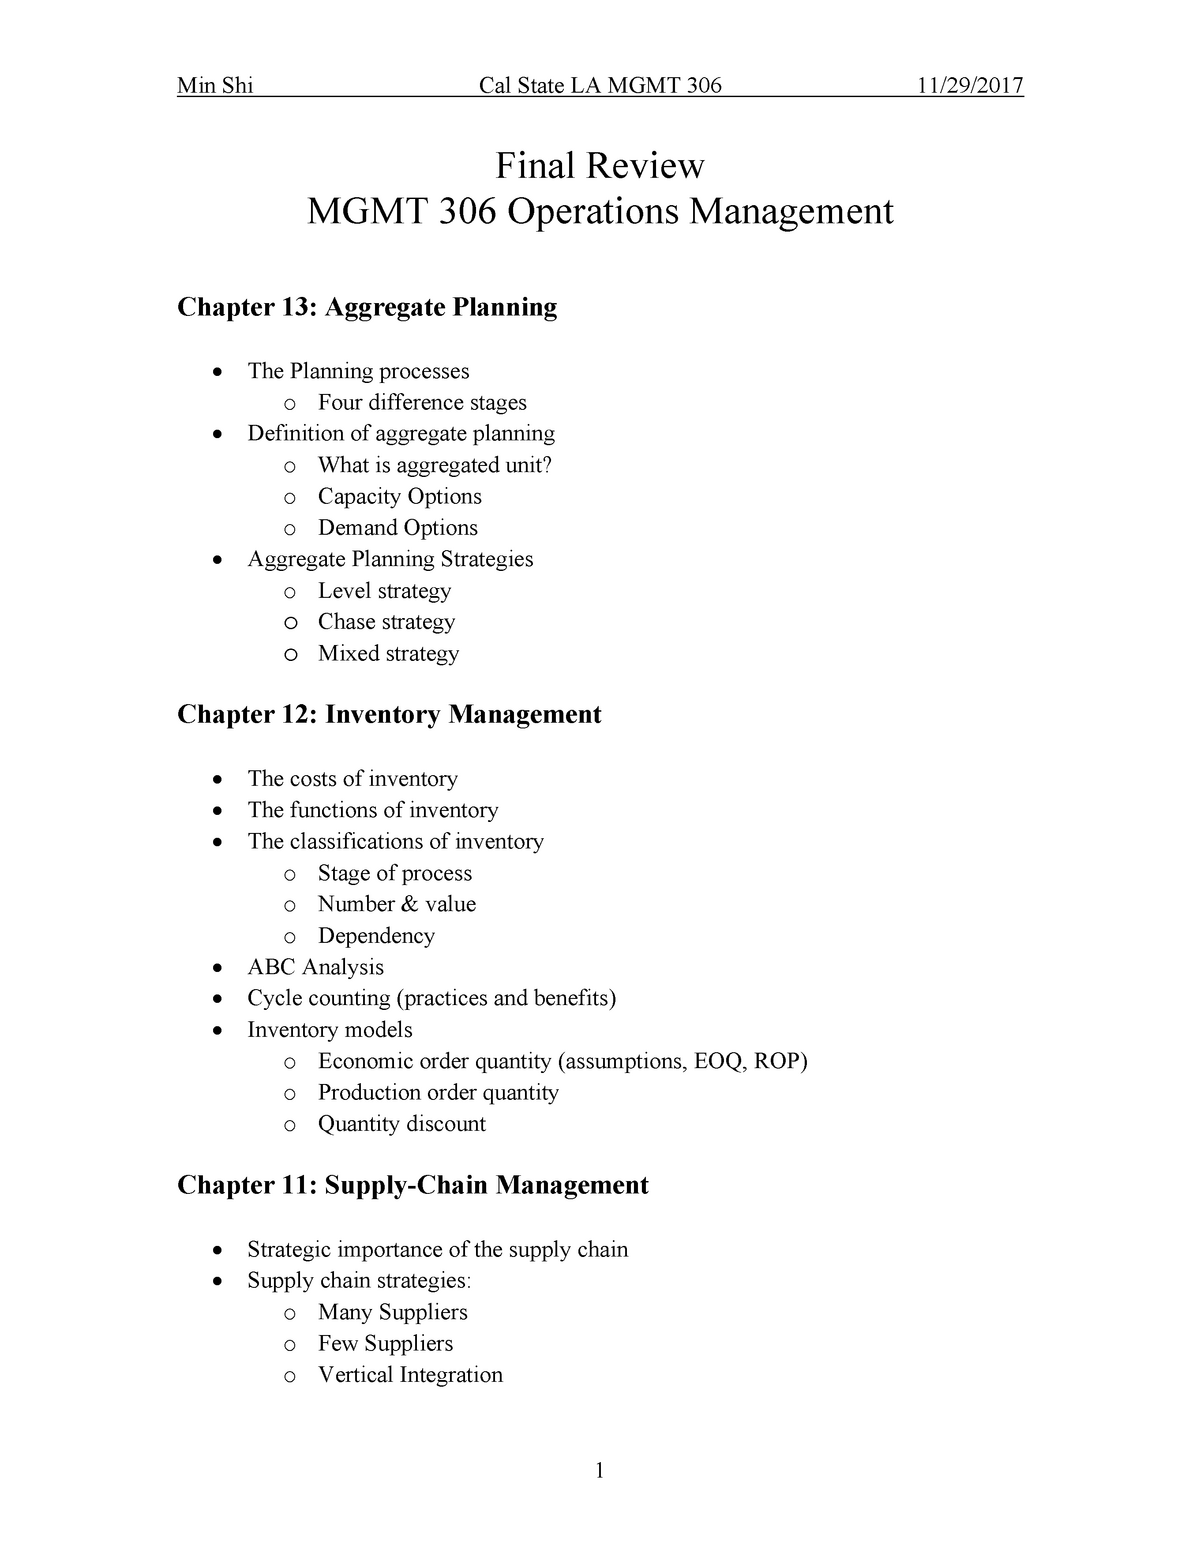 Final Review - MGMT 3060 : Operations Management - StuDocu